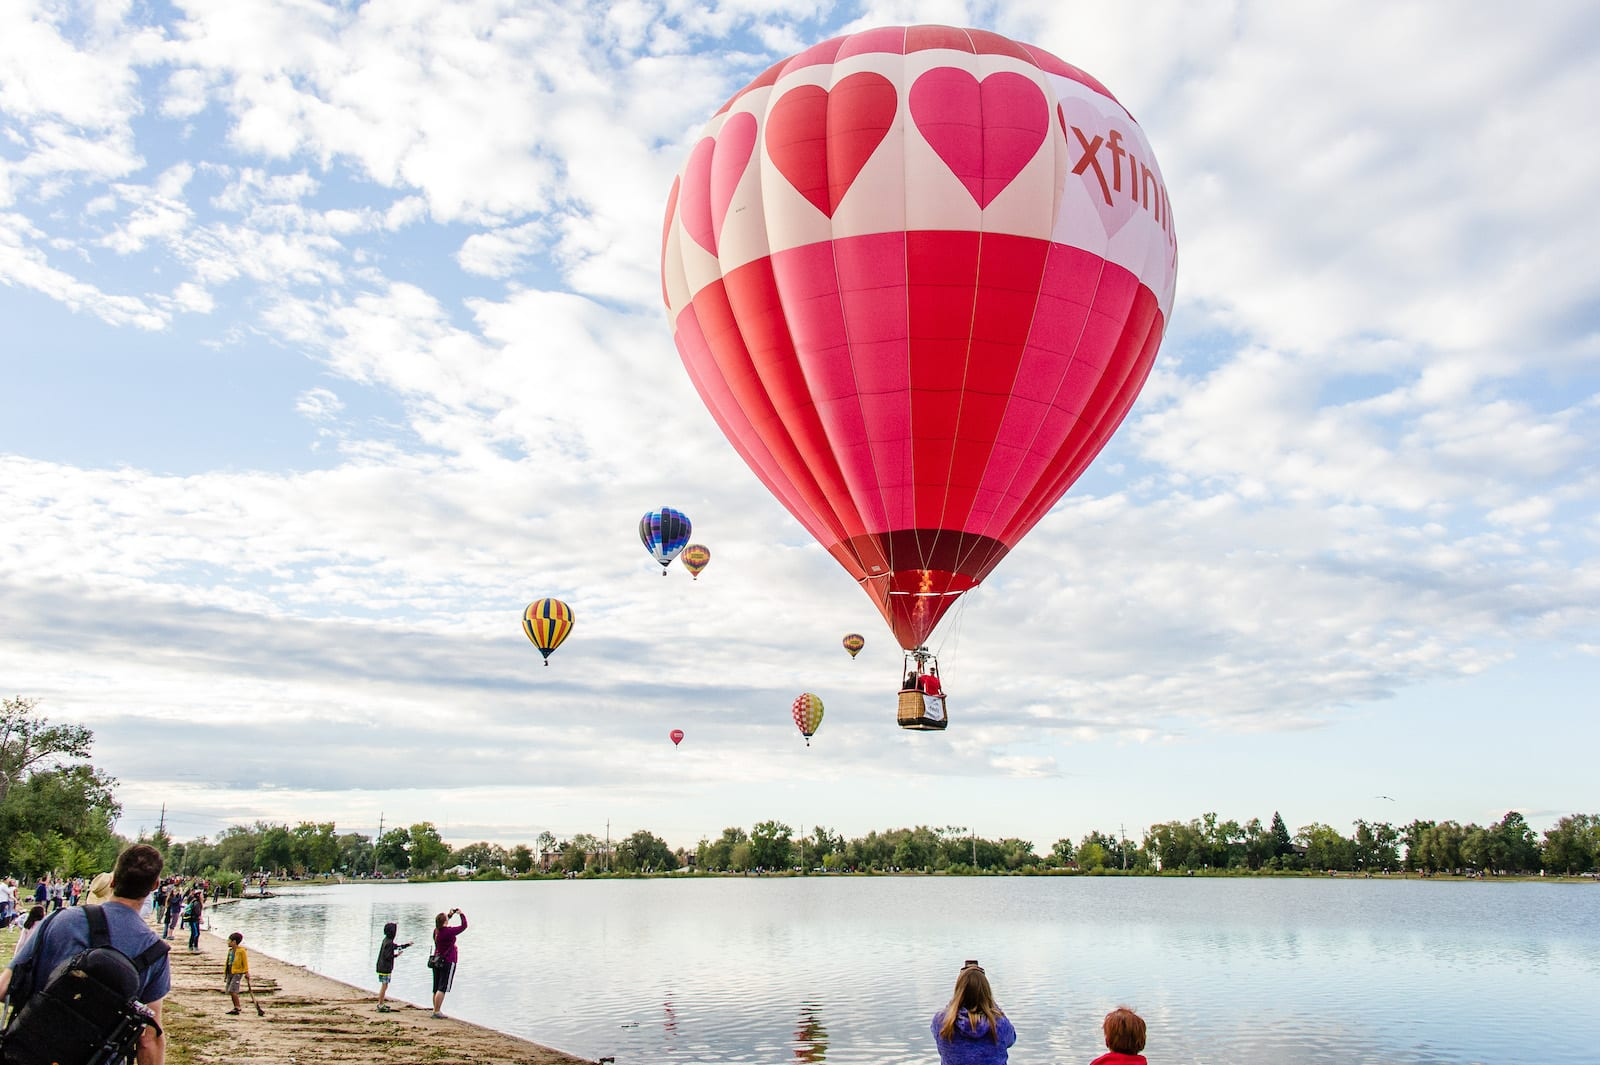 Balloon Classic in Memorial Park, Colorado Springs